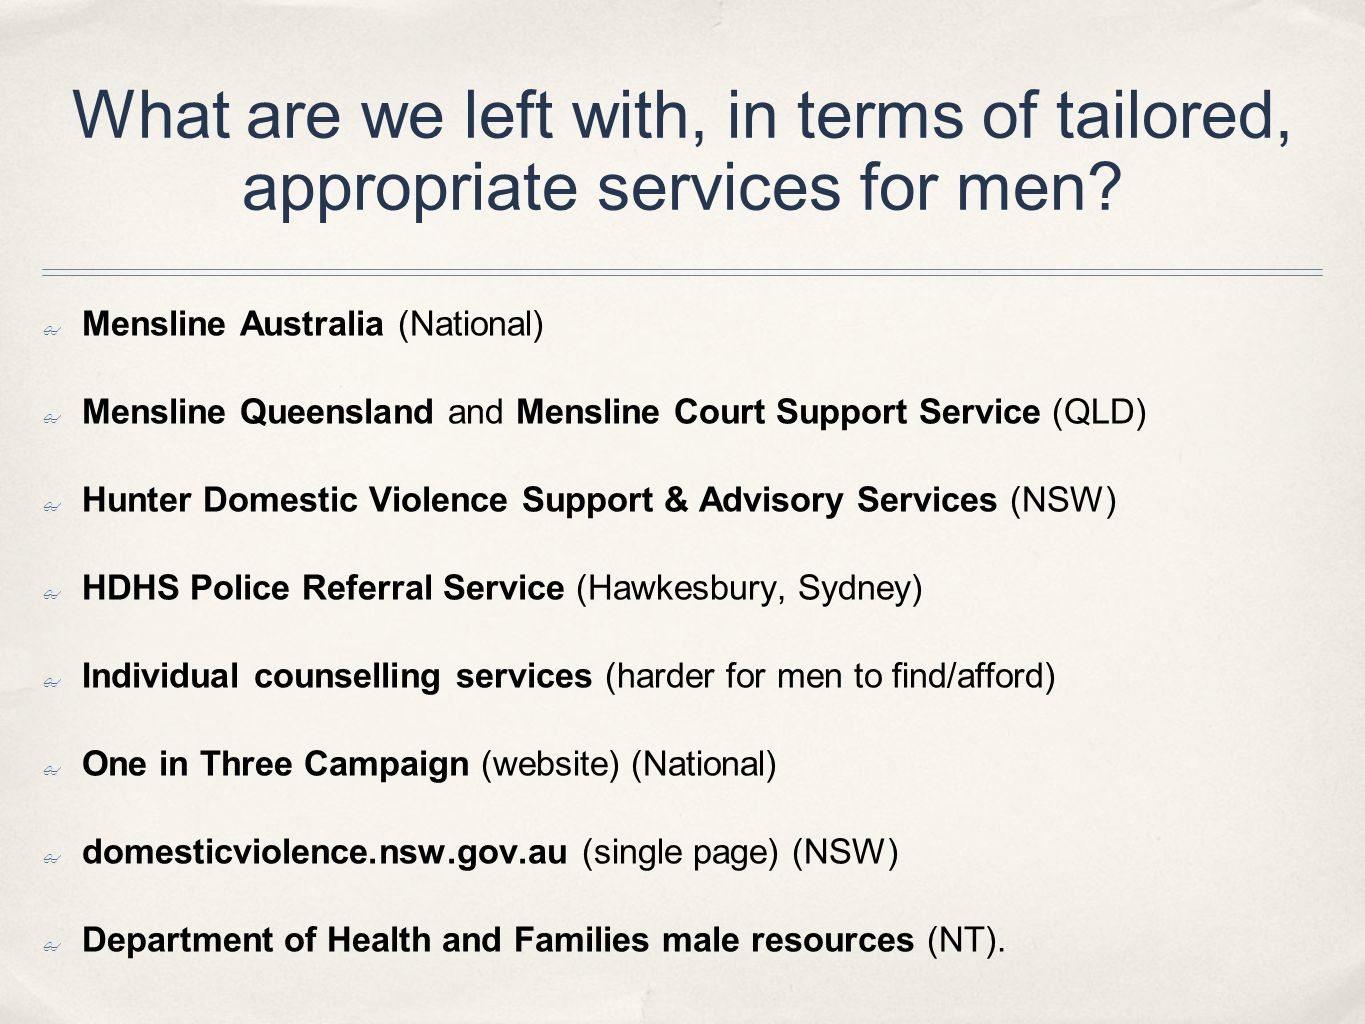 What are we left with, in terms of tailored, appropriate services for men